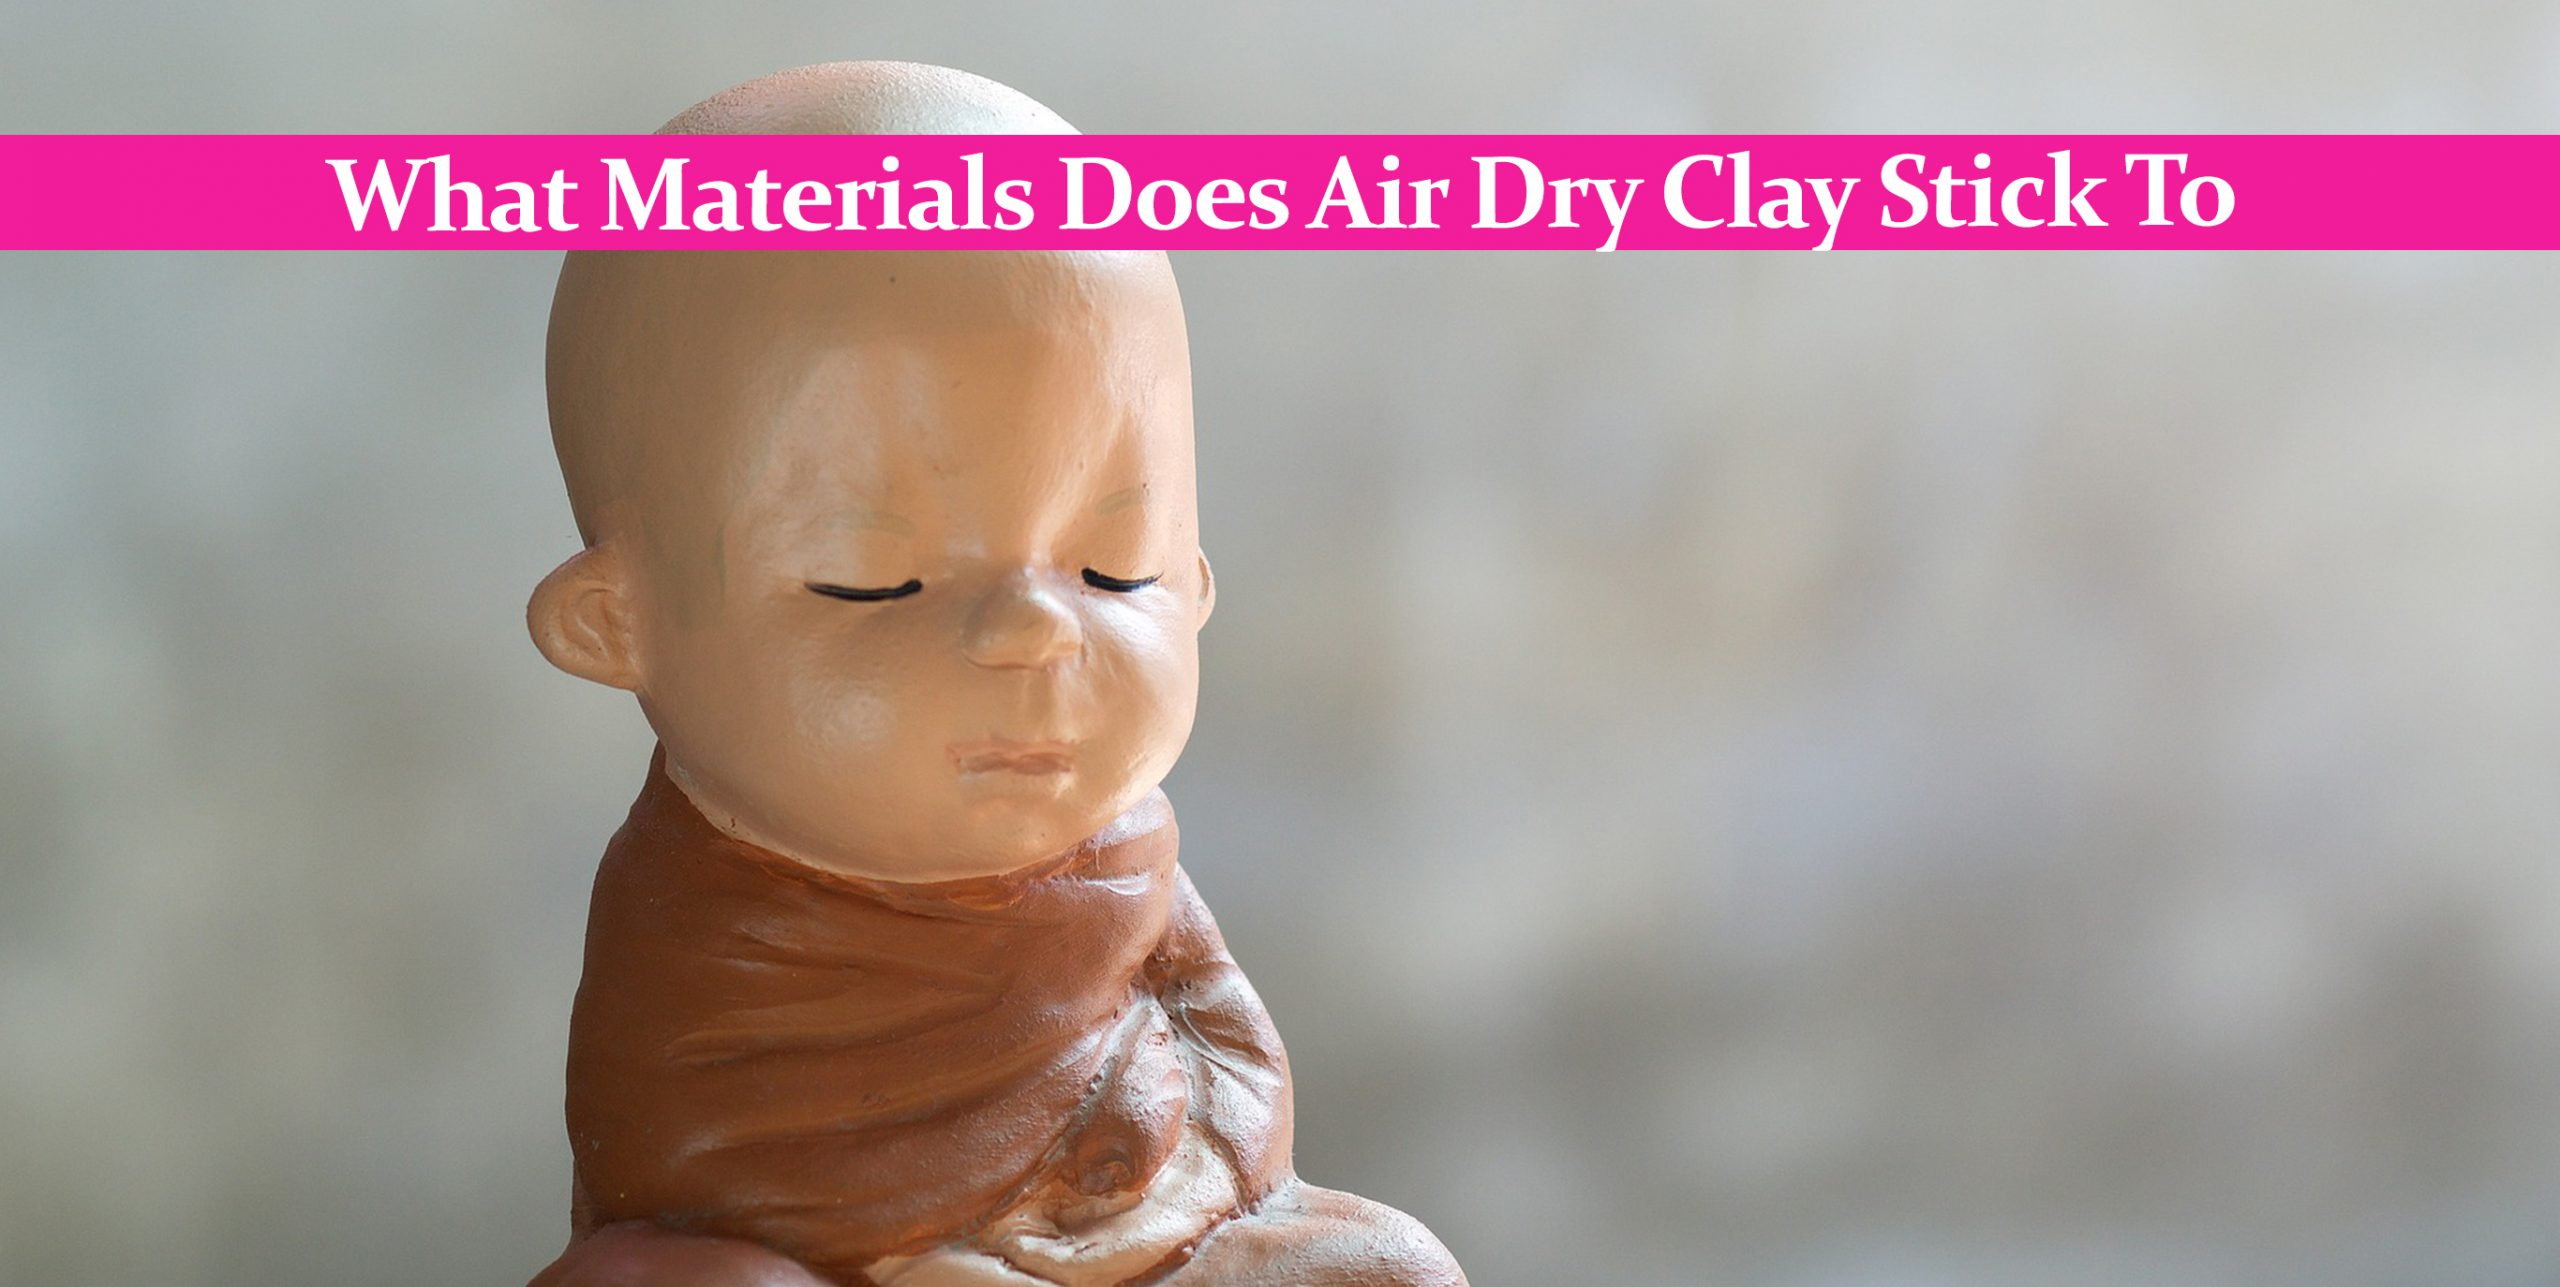 What Materials Does Air Dry Clay Stick To